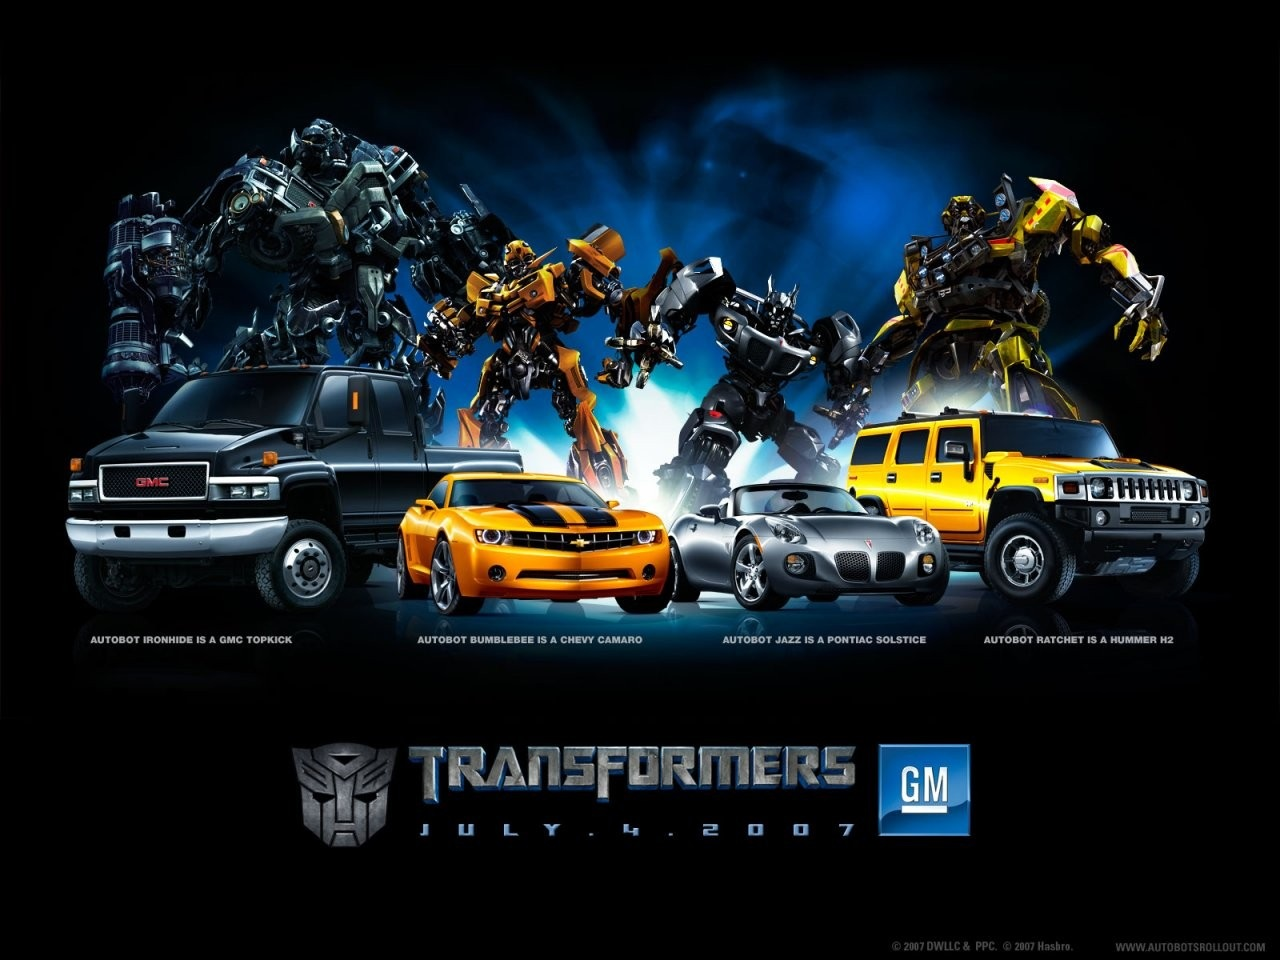 https://1.bp.blogspot.com/-WX6jcVEcruA/TgiqYWYBoqI/AAAAAAAABLs/BUZf9AMKg5I/s1600/Transformers+3+movie+-wallpaper-02.jpg